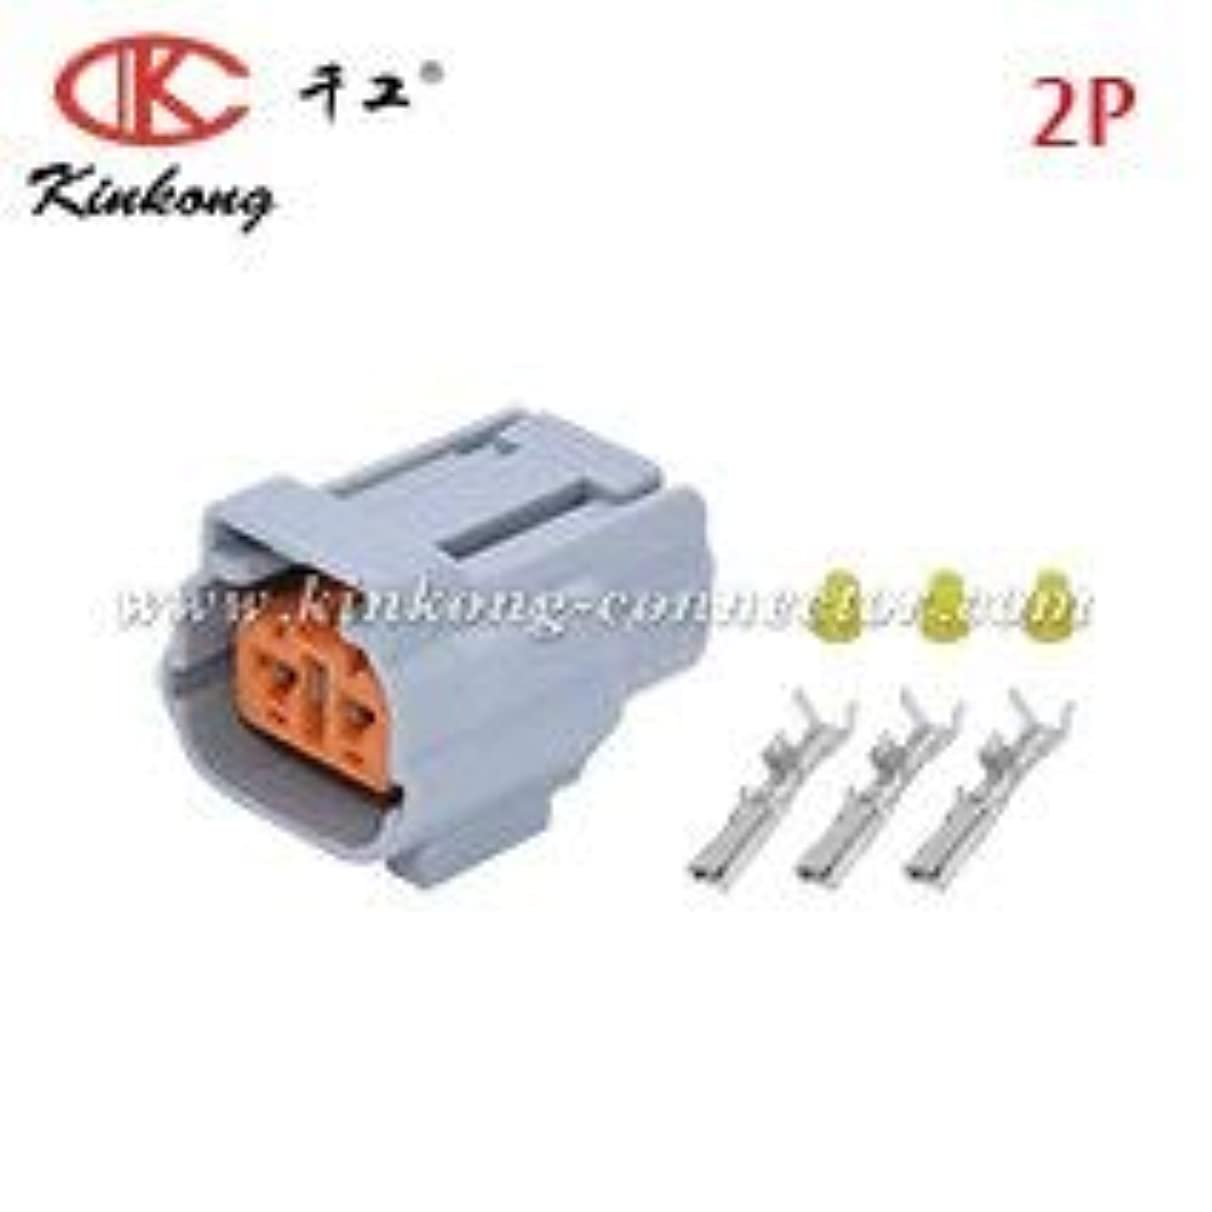 Gimax Sumitomo 6195-0006 2P090WP-DL-M-S 2P090WP-DL-M-L 6195-0003 2P090WP-DL-F-S 2P090WP-DL-F-L 2 way auto connection for Ford WPT-1210 - (Color: Female)